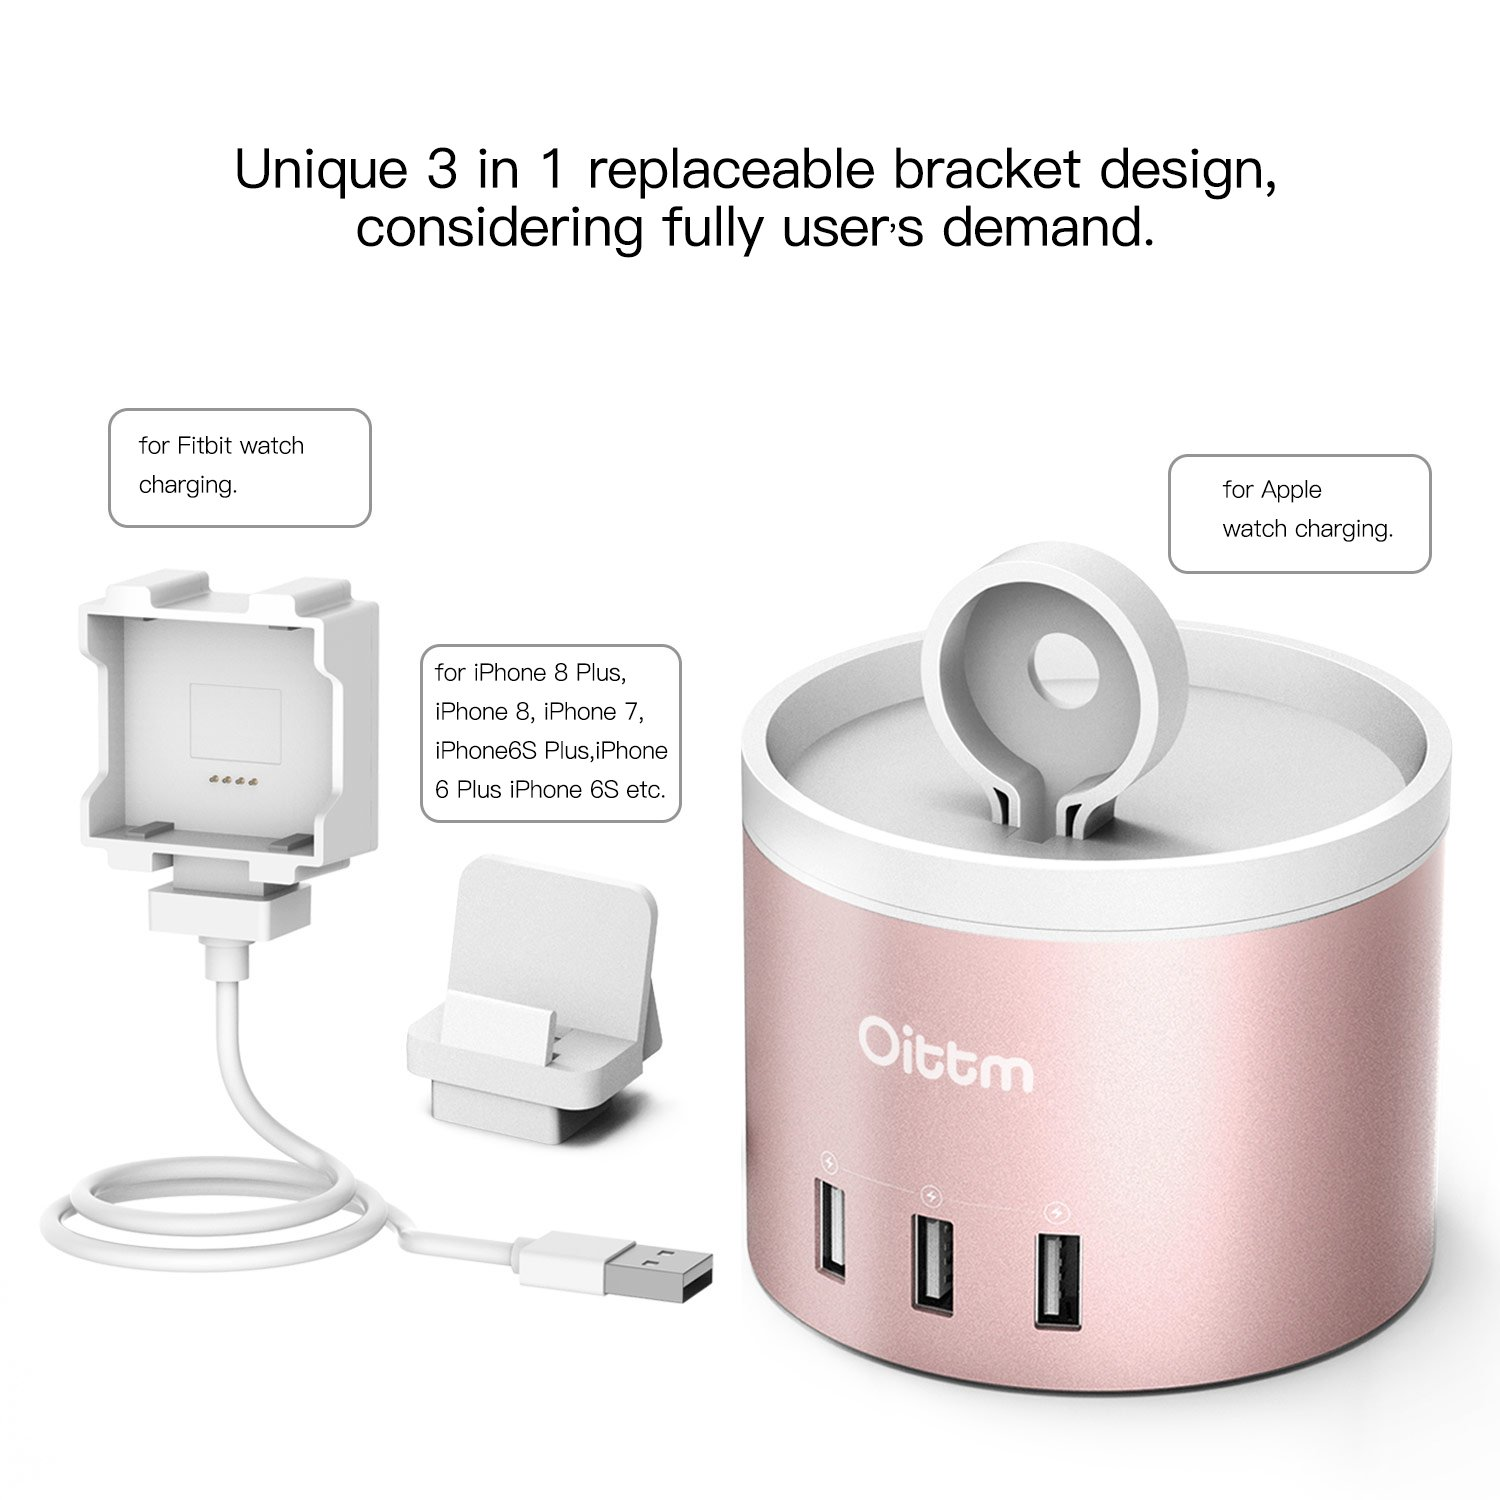 Oittm Apple Watch Series 3 Stand [3 in 1 Bracket Power Dock] 4-Port USB Rechargeable Stand with Phone Holder for iPhone X, iPhone8, 8 Plus, 7, 7 Plus, 6 Plus, iWatch 2/1, Fitbit Blaze (Rose Gold) by Oittm (Image #8)